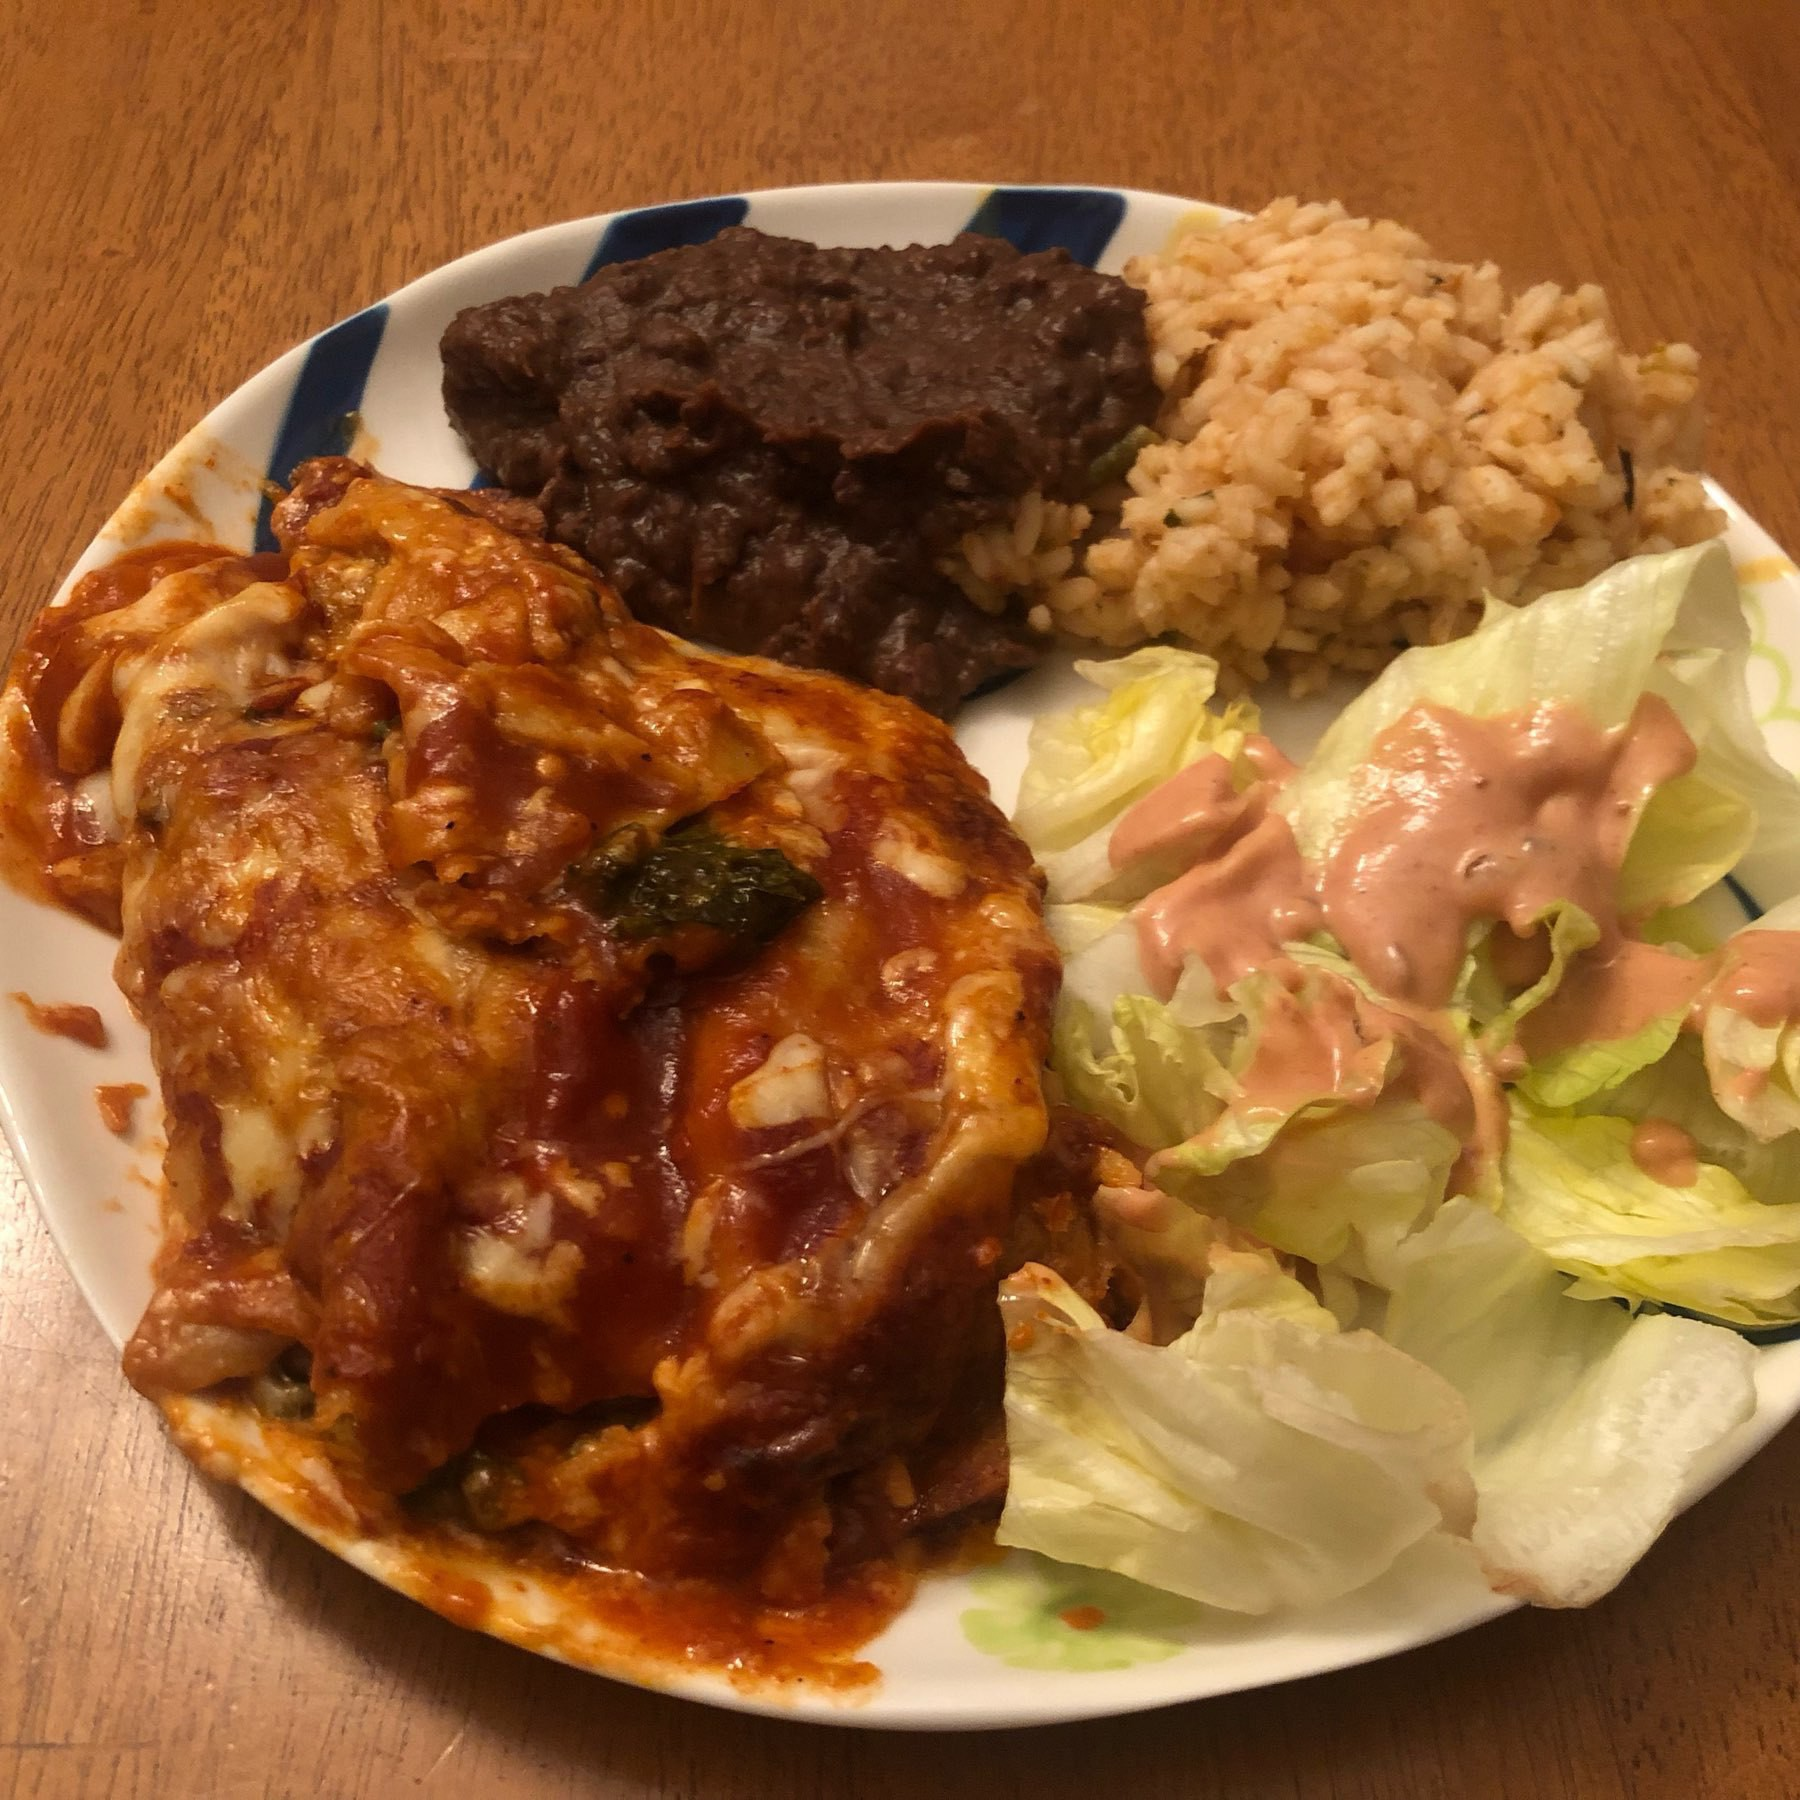 Homemade enchiladas with rice, beans, iceberg salad.